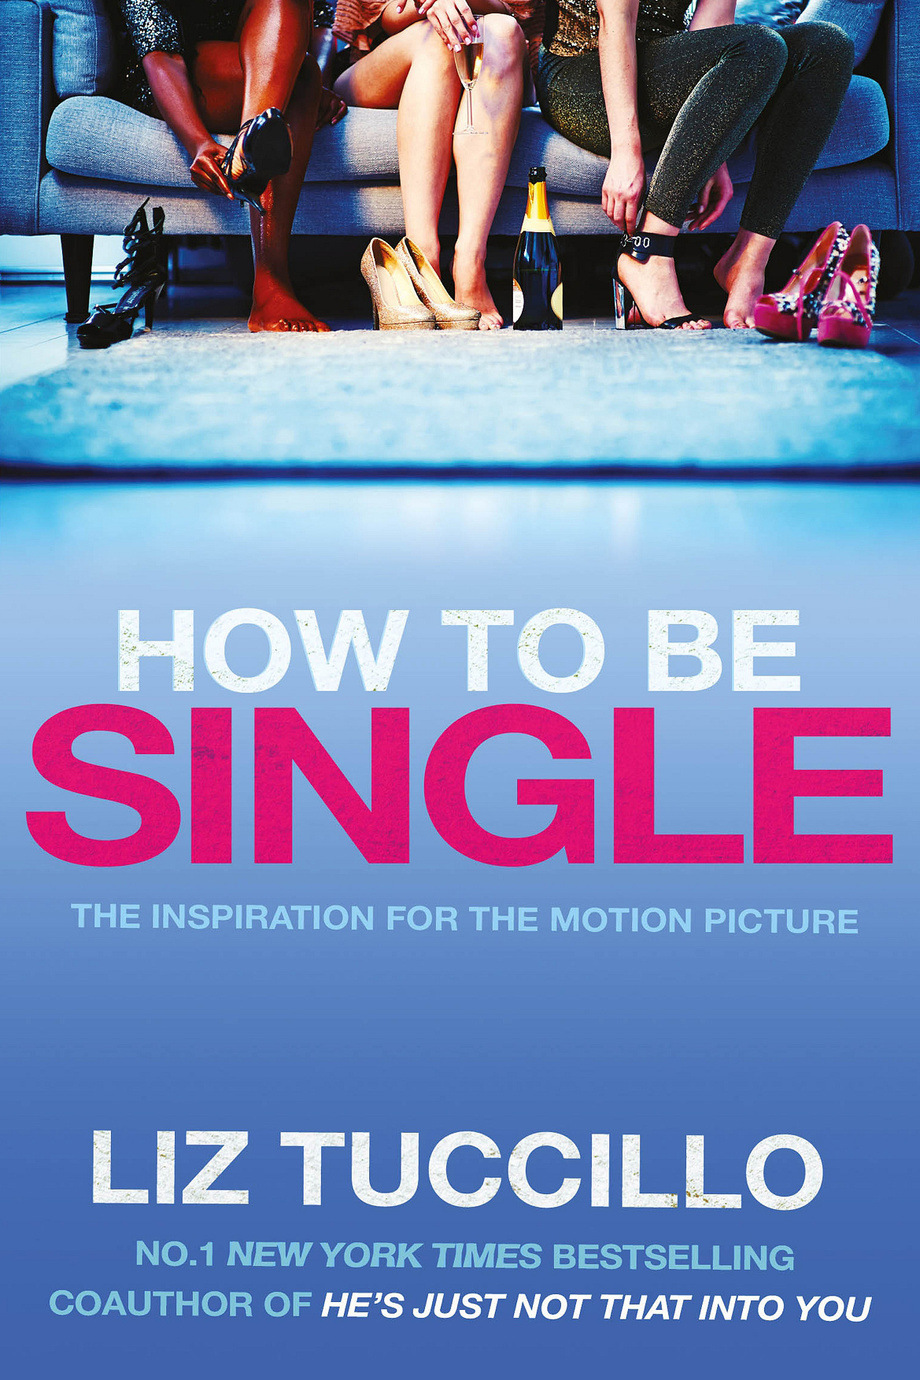 How to be single film tie in edition by liz tuccillo paperback how to be single film tie in edition by liz tuccillo paperback myer online ccuart Images